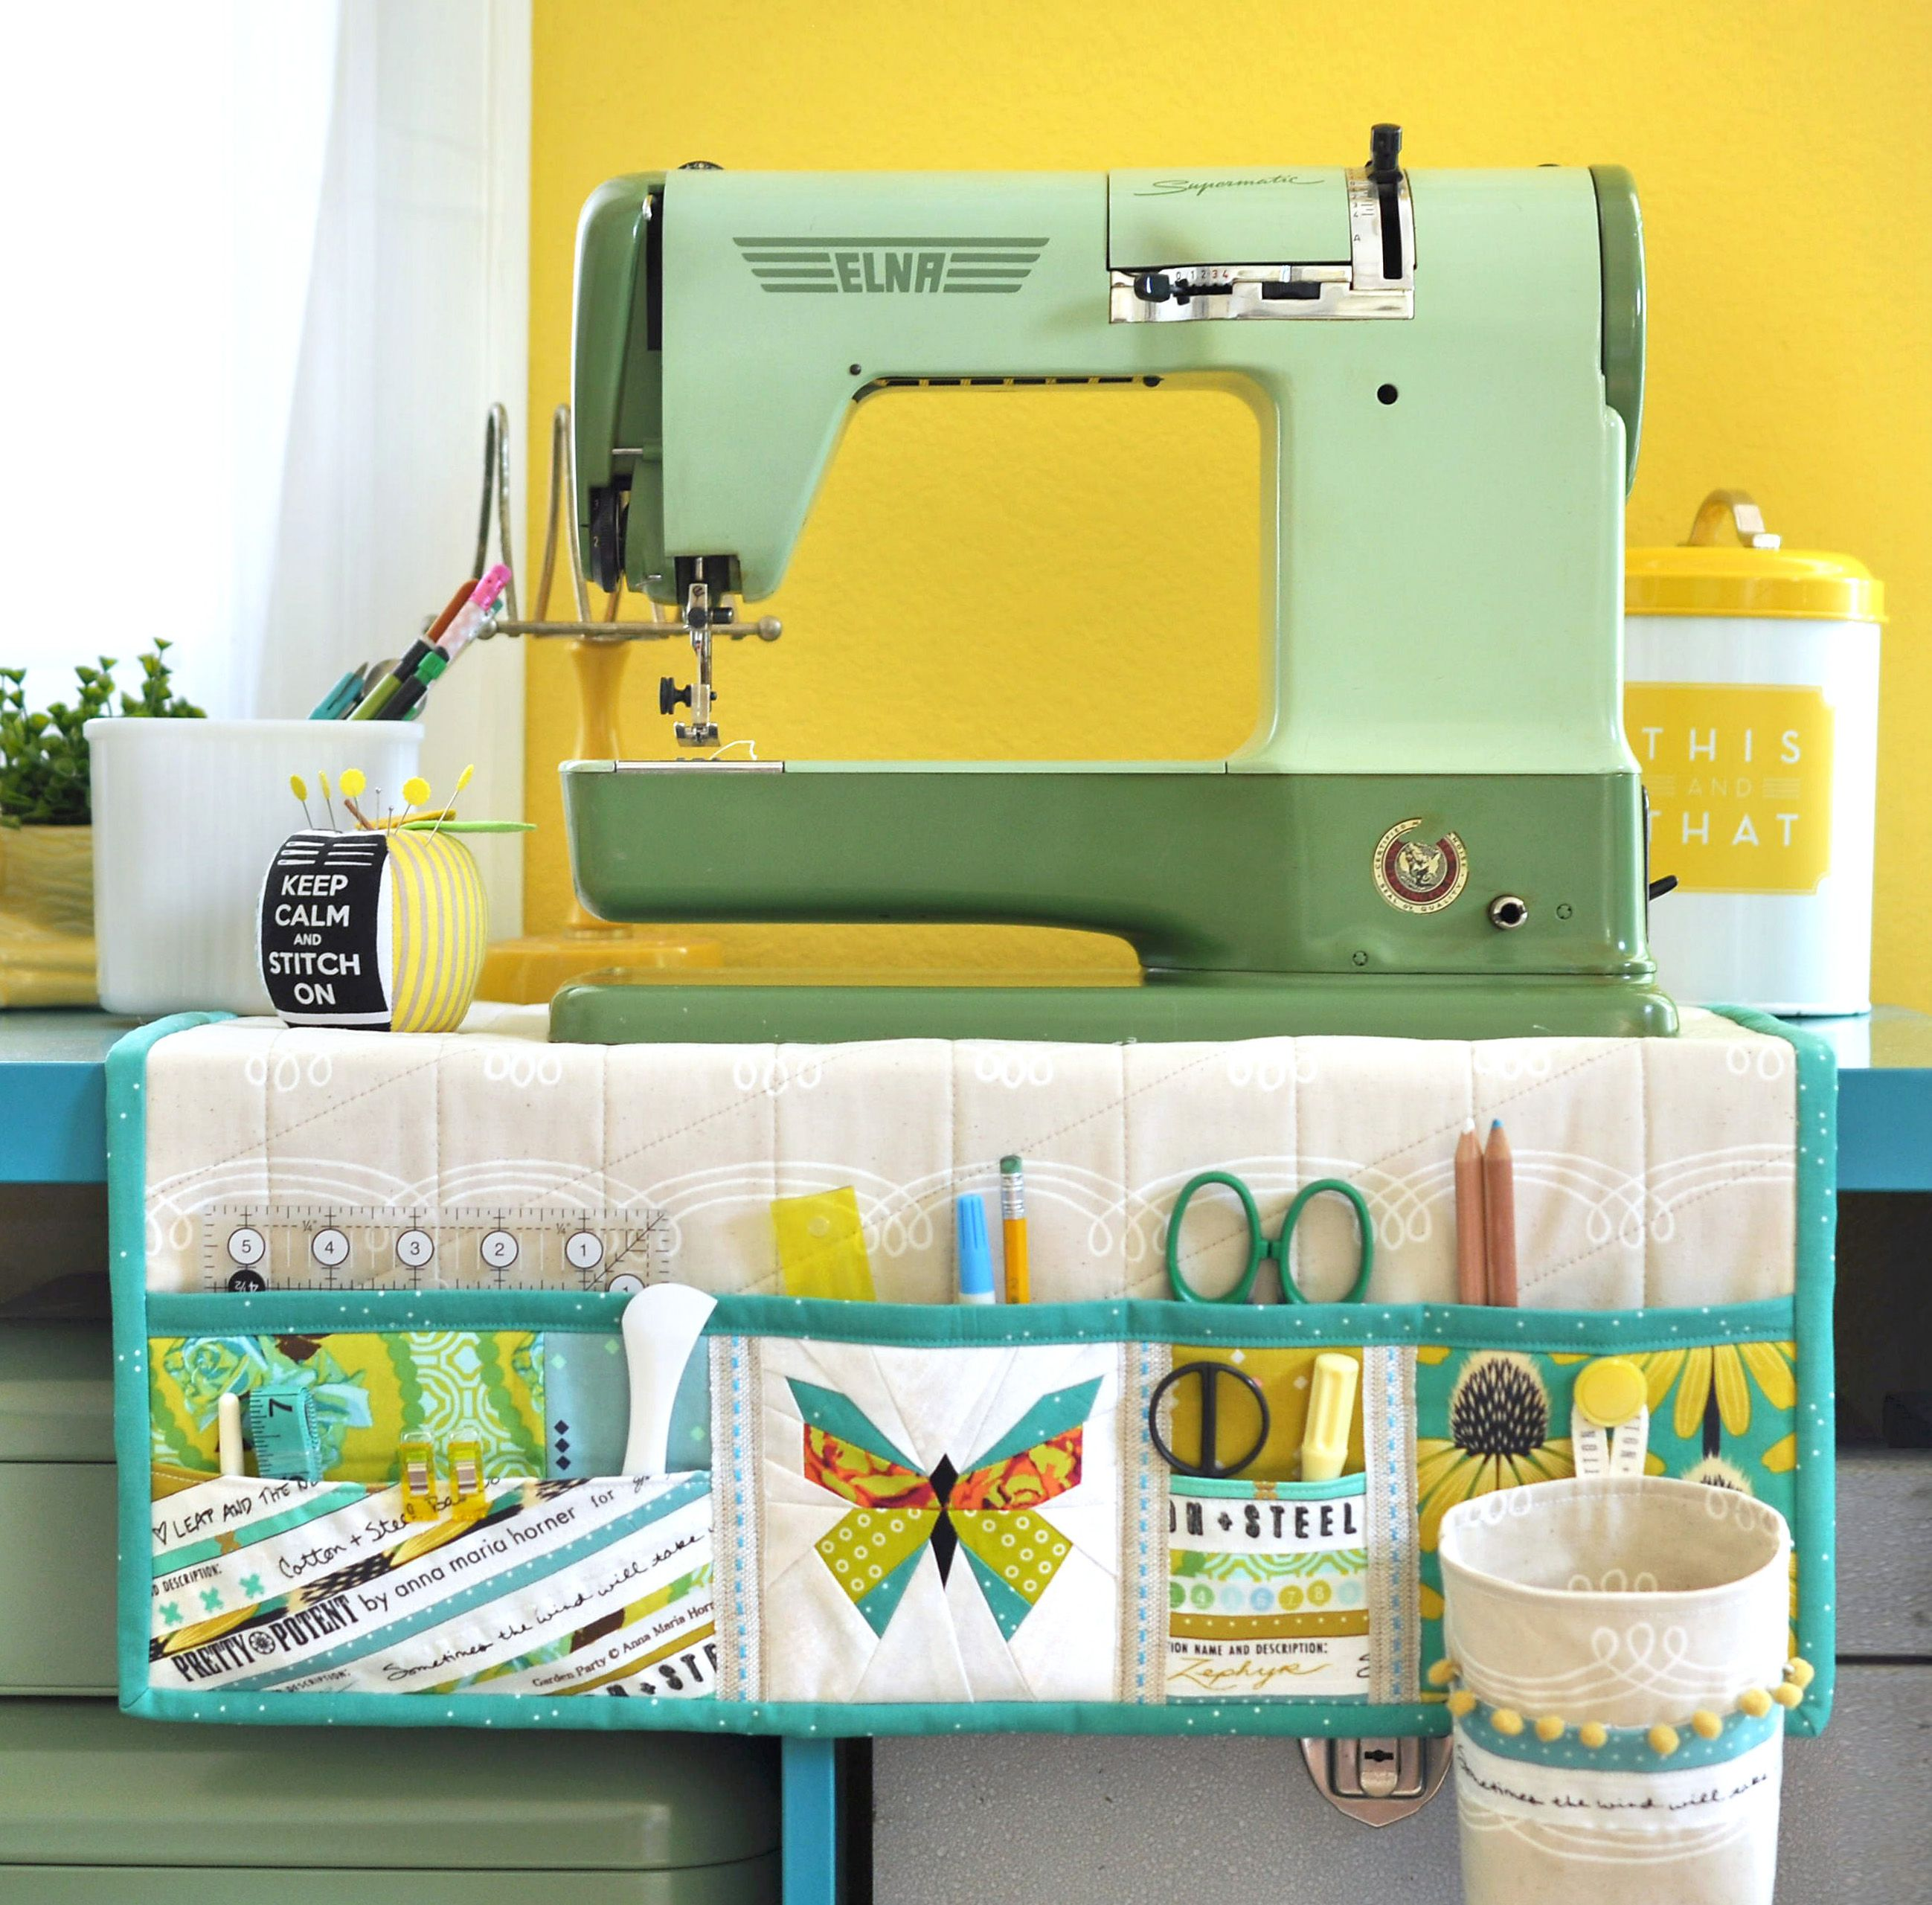 Undercover maker mat free pattern lillyella stitchery ties undercover maker mat free pattern lillyella stitchery ties on to become sewing machine cover when not in use as a mat this wordpress free jeuxipadfo Choice Image